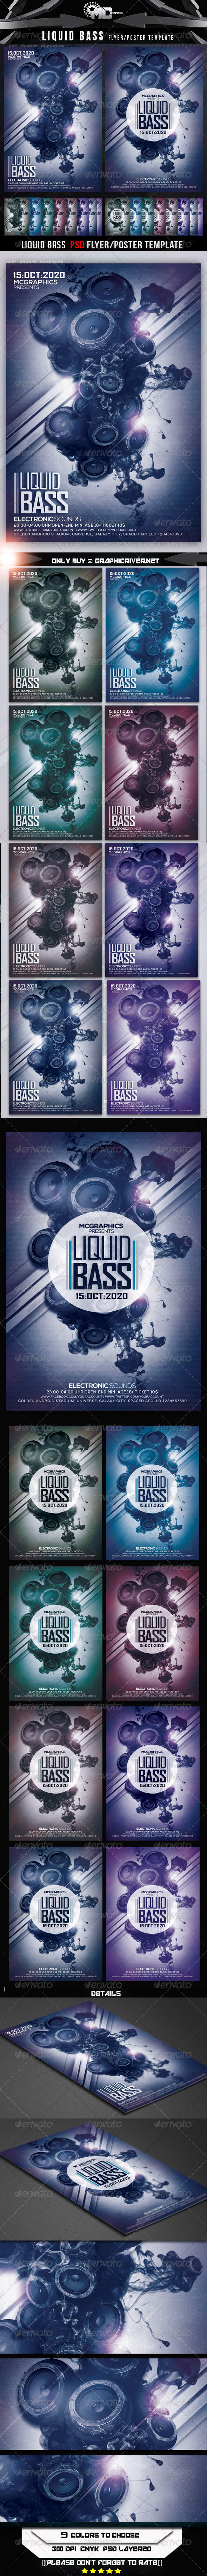 GraphicRiver Liquid Bass Flyer Template 8012966